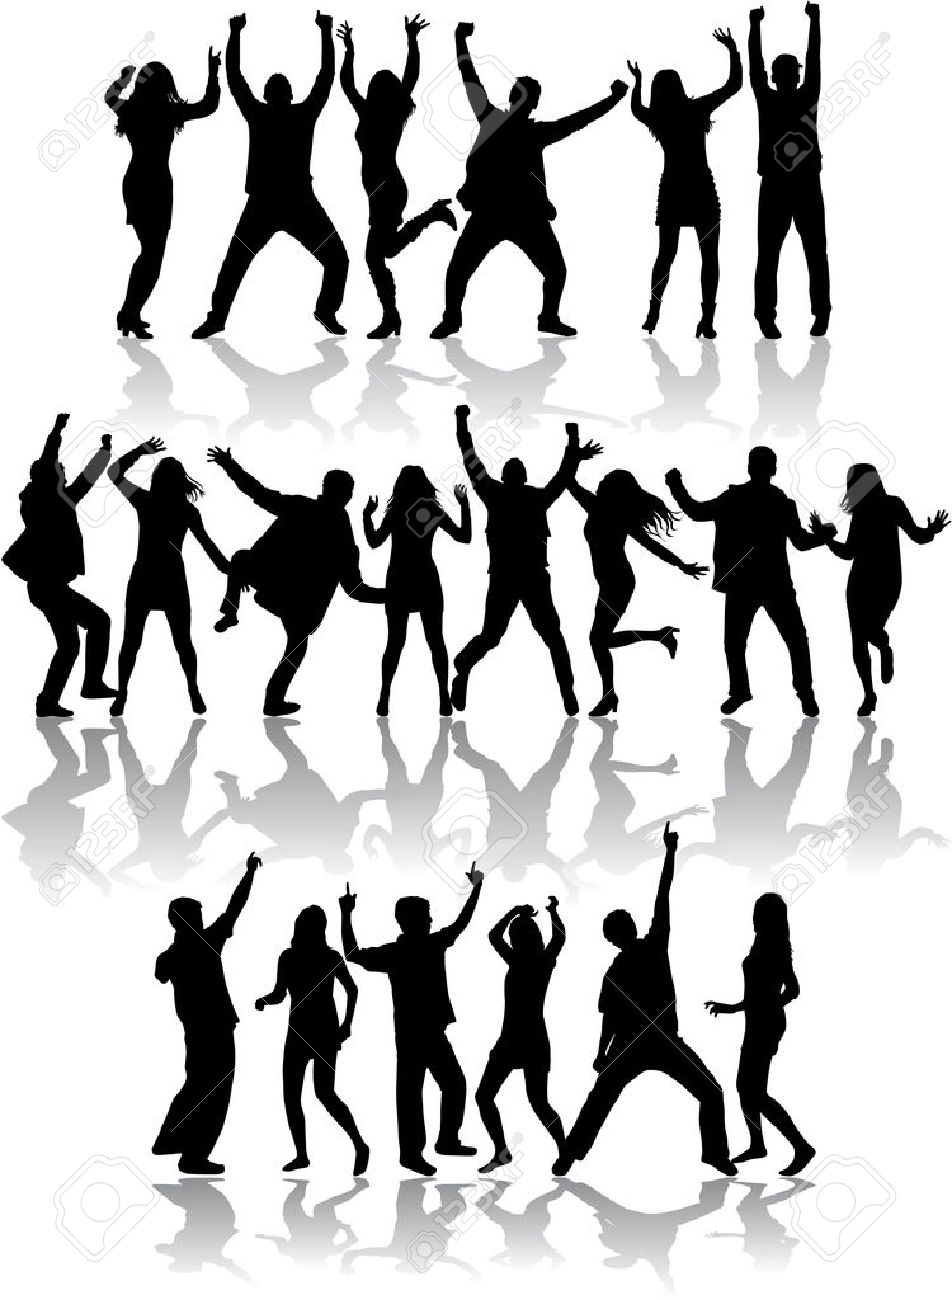 square dance silhouette clip art at getdrawings com free for rh getdrawings com people dancing clip art images people dancing clip art images